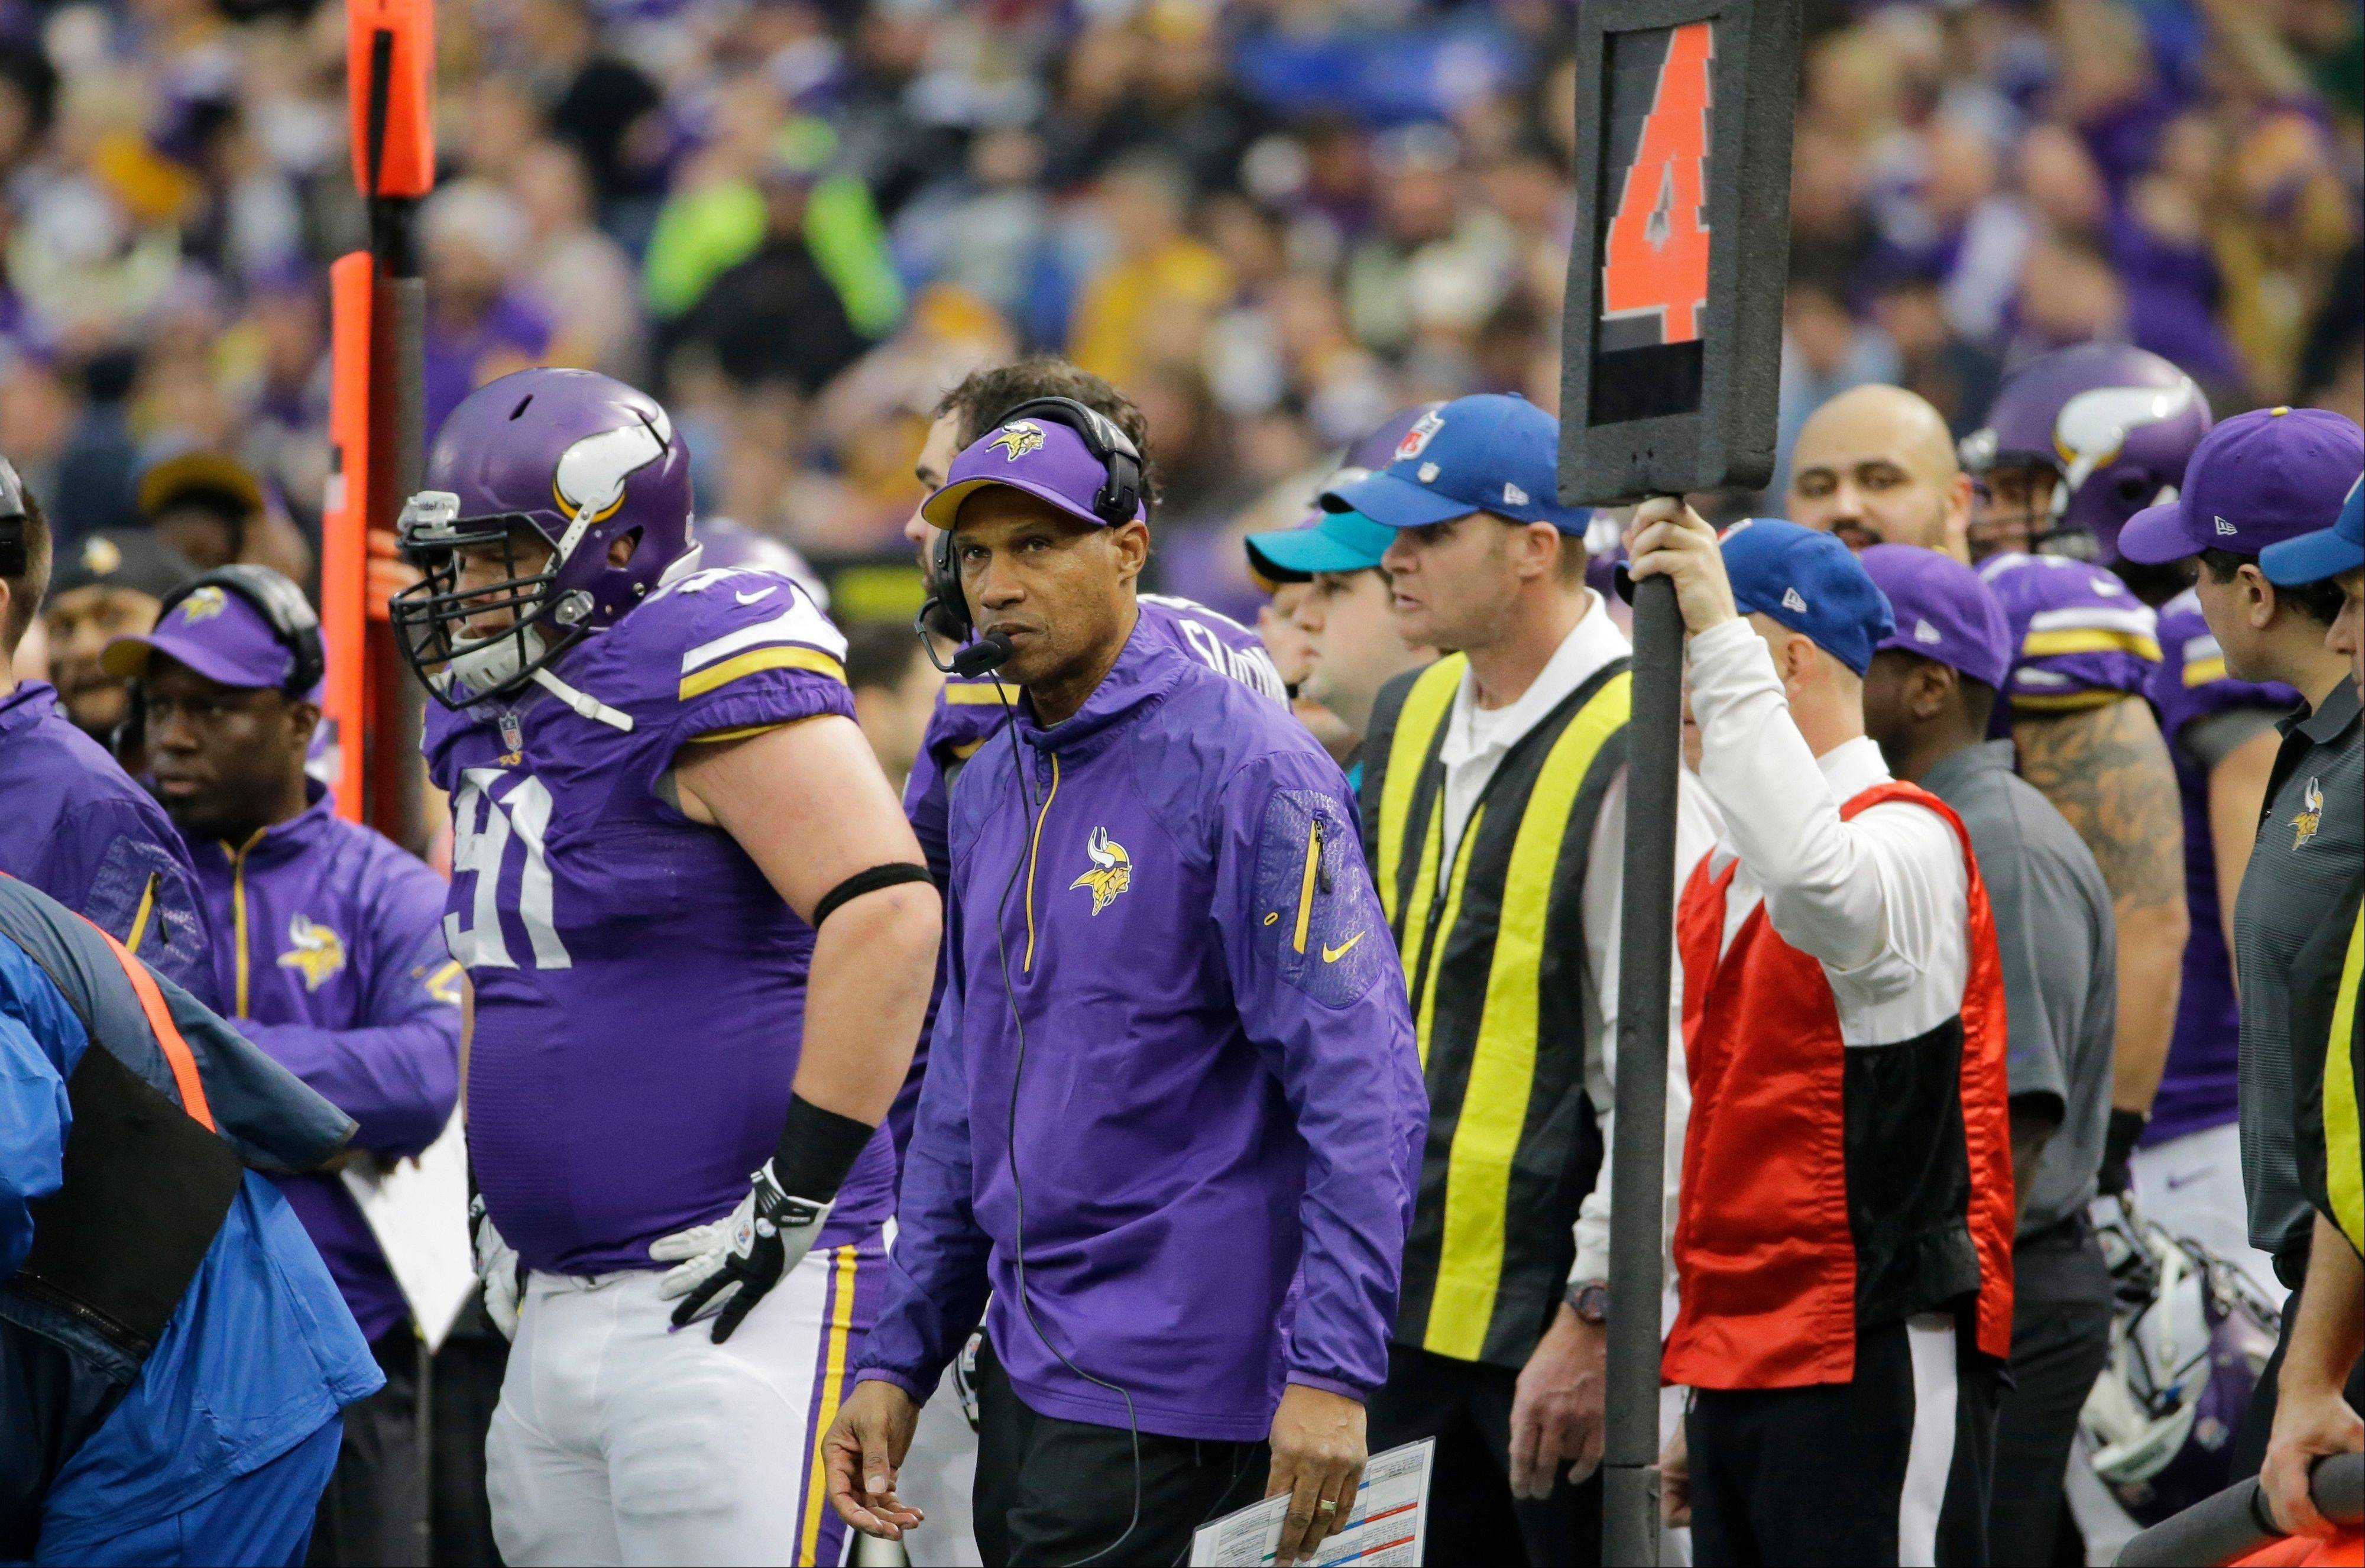 Minnesota Vikings head coach Leslie Frazier, center, watches from the sidelines Sunday during the second half against the Detroit Lions in Minneapolis. The Vikings fired Frazier Monday morning.